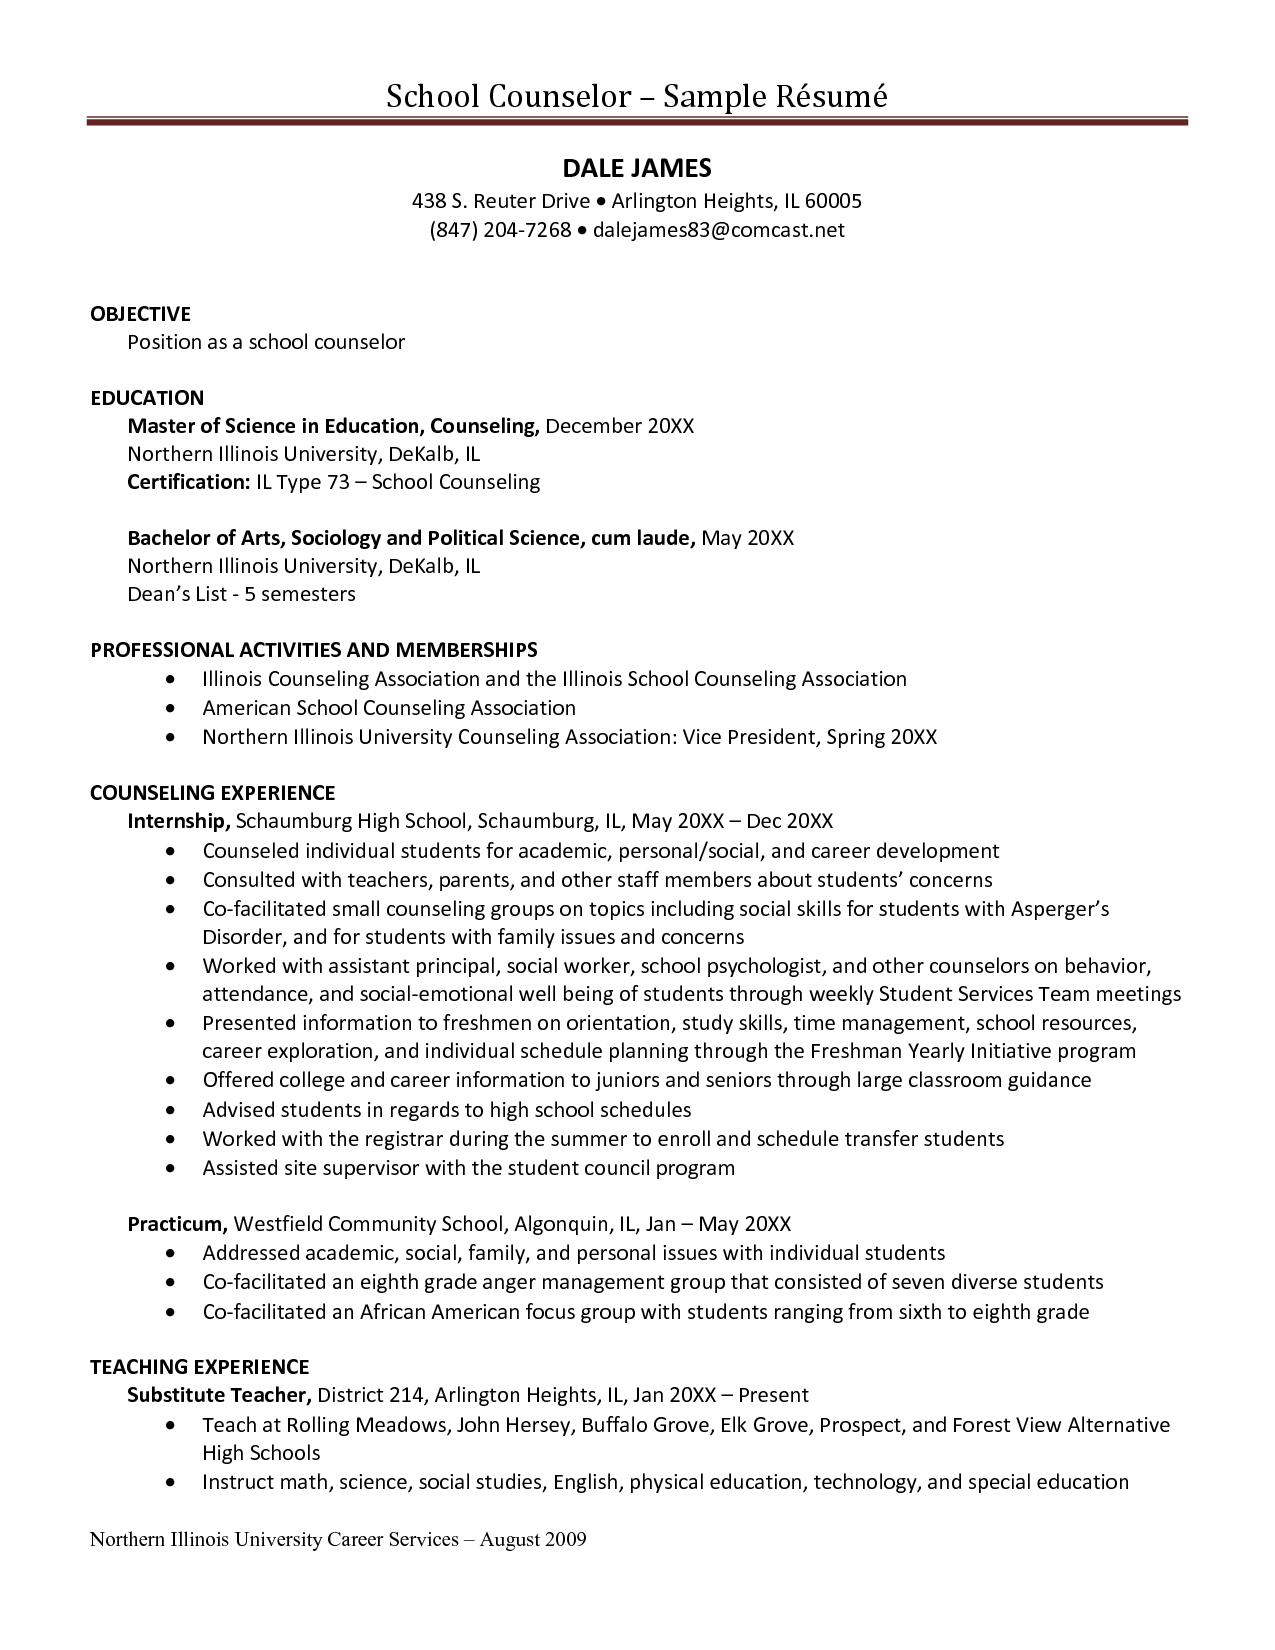 guidance counselor resume counseling resume sample - Counseling Resume Sample